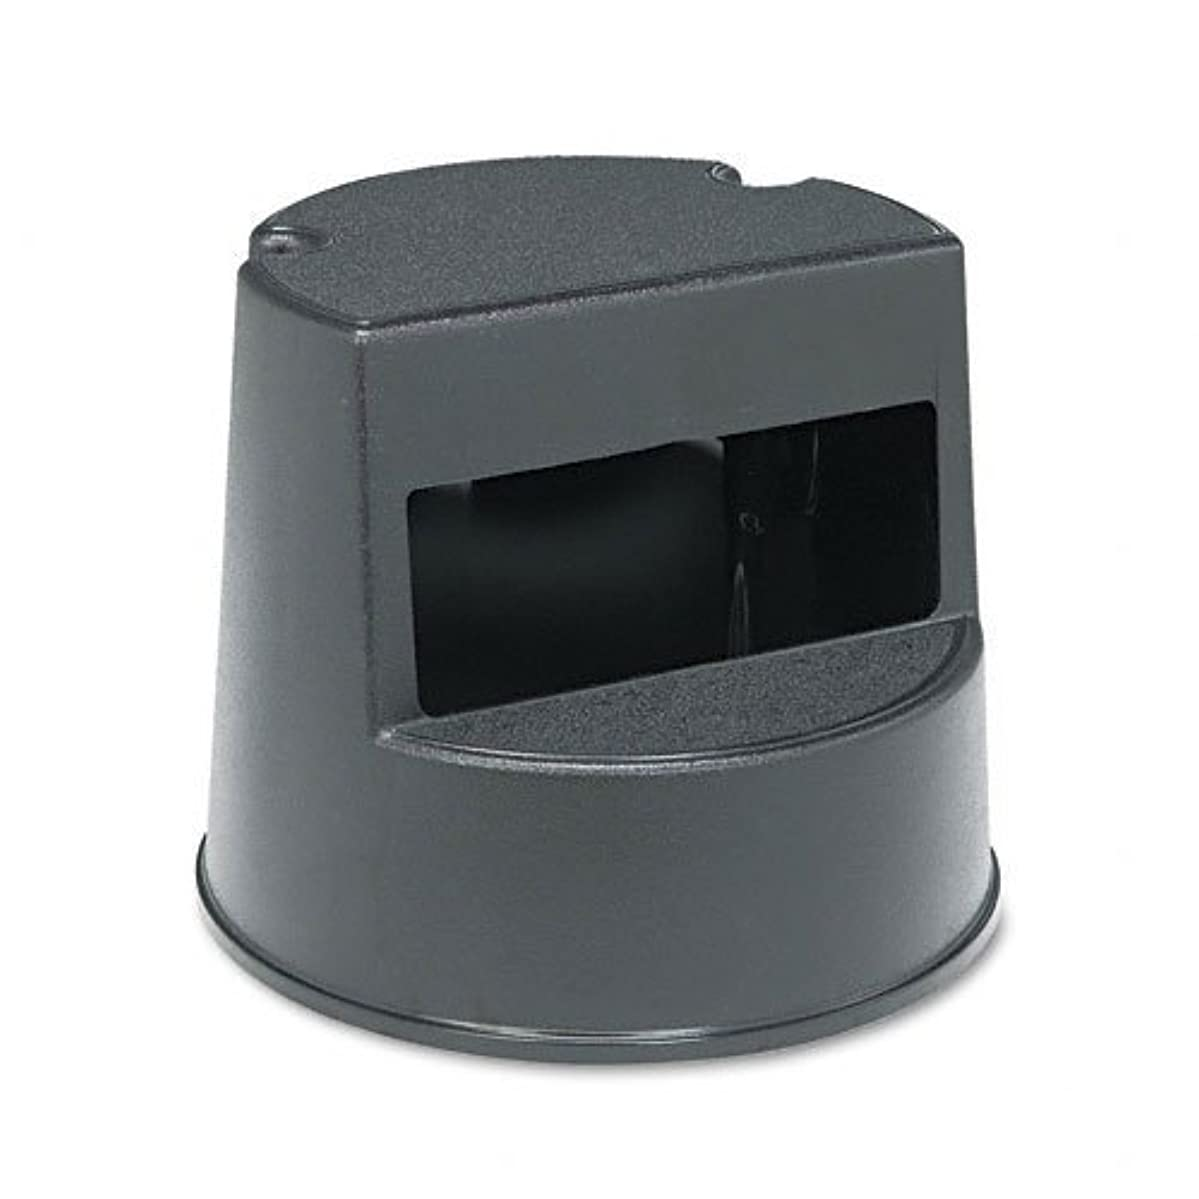 Rubbermaid 252300BK Rolling Step Stool Curved Design Retracting Casters 16 dia. x 13 1/2h Black